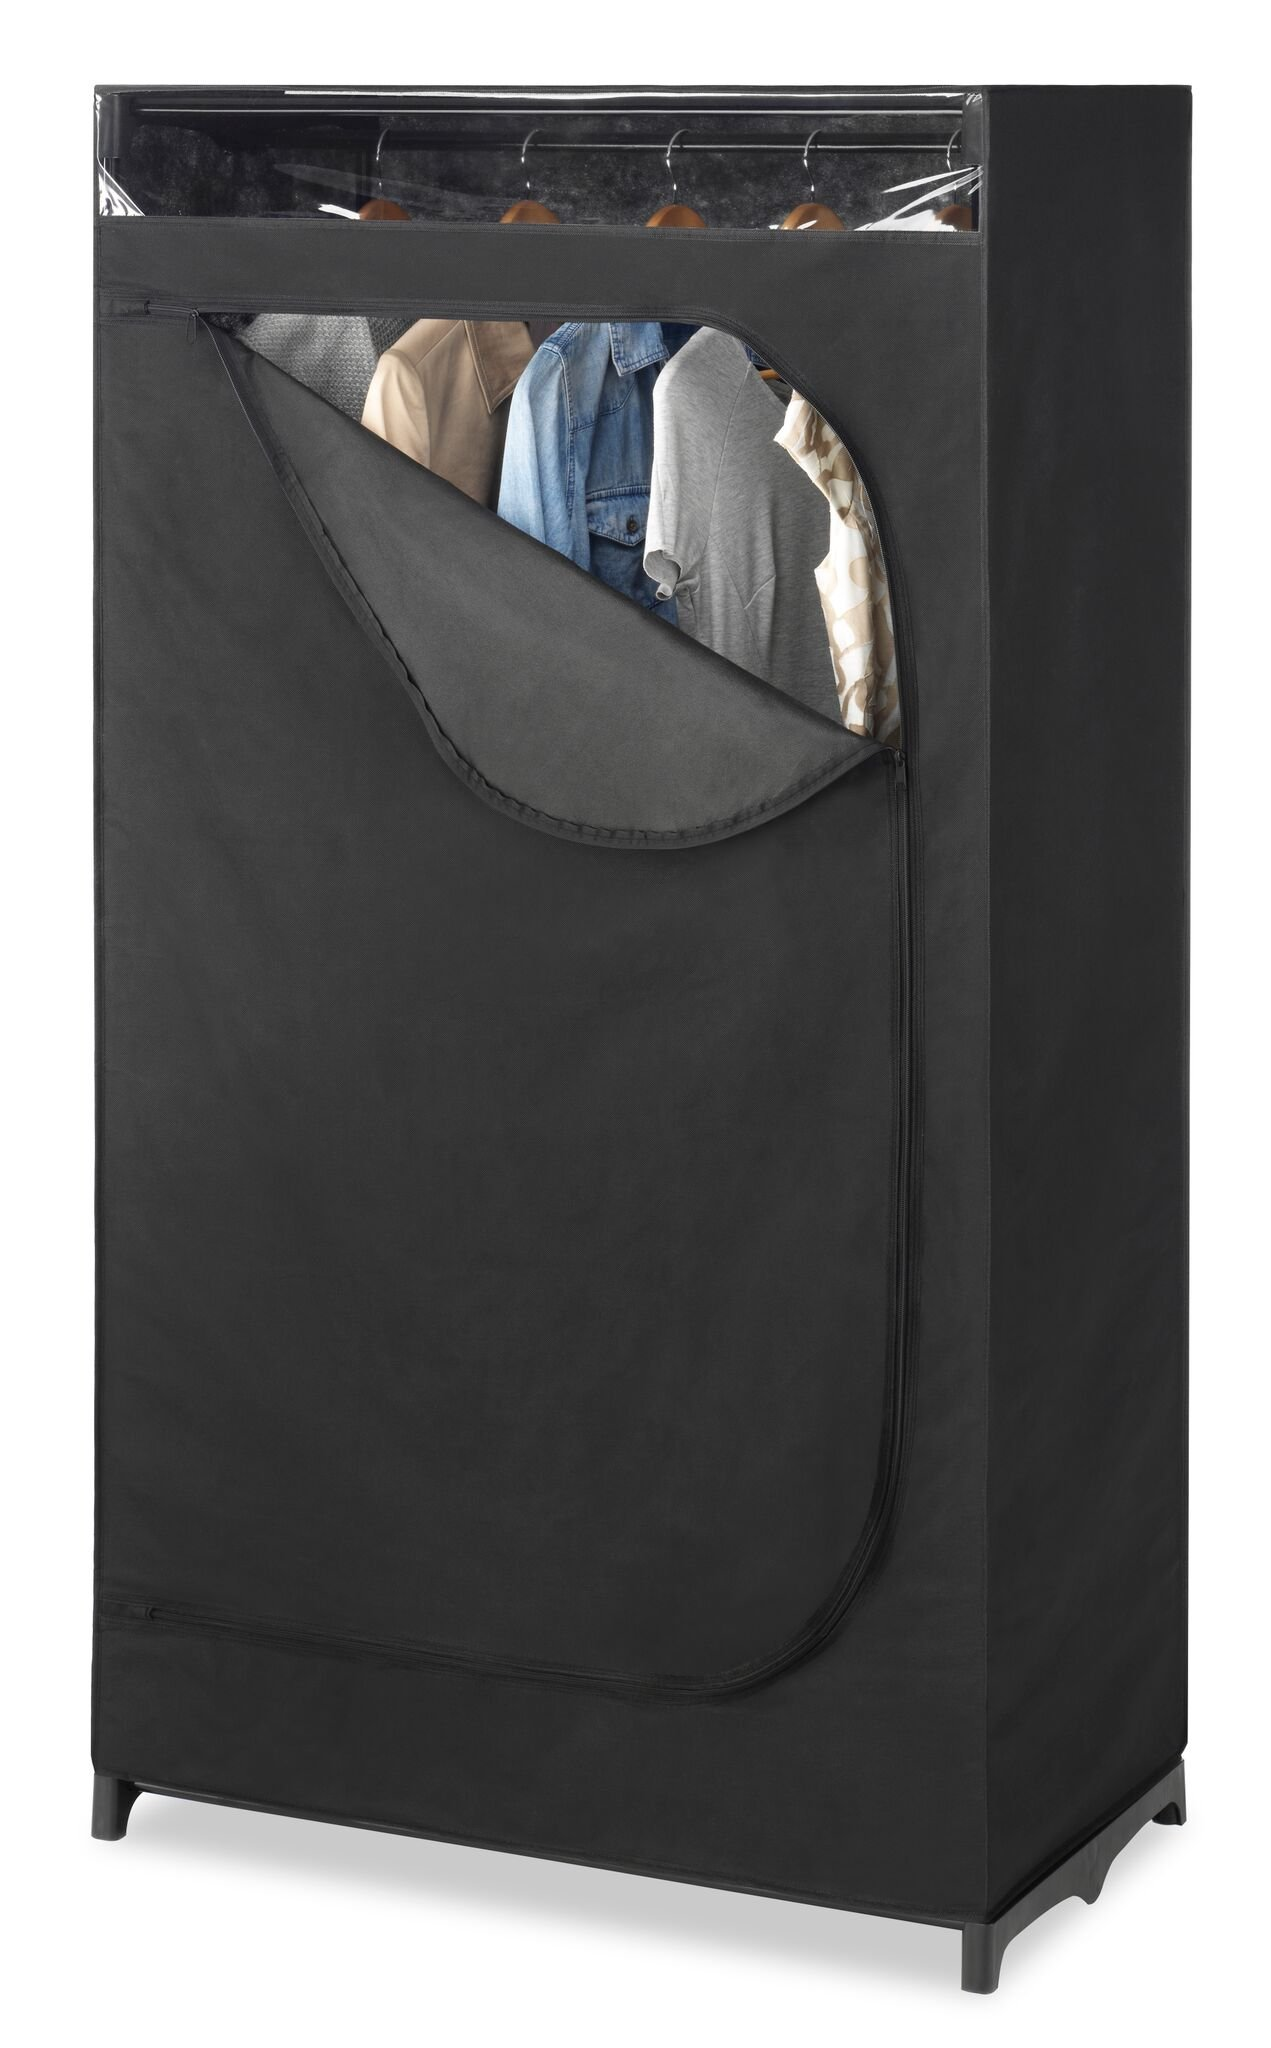 Whitmor Portable Wardrobe Clothes Closet Storage Organizer with Hanging Rack - Black Color - No-tool Assembly - See Through Window - Washable Fabric Cover - Extra Strong & Durable - 19.75 x 36 x 64'' by Whitmor